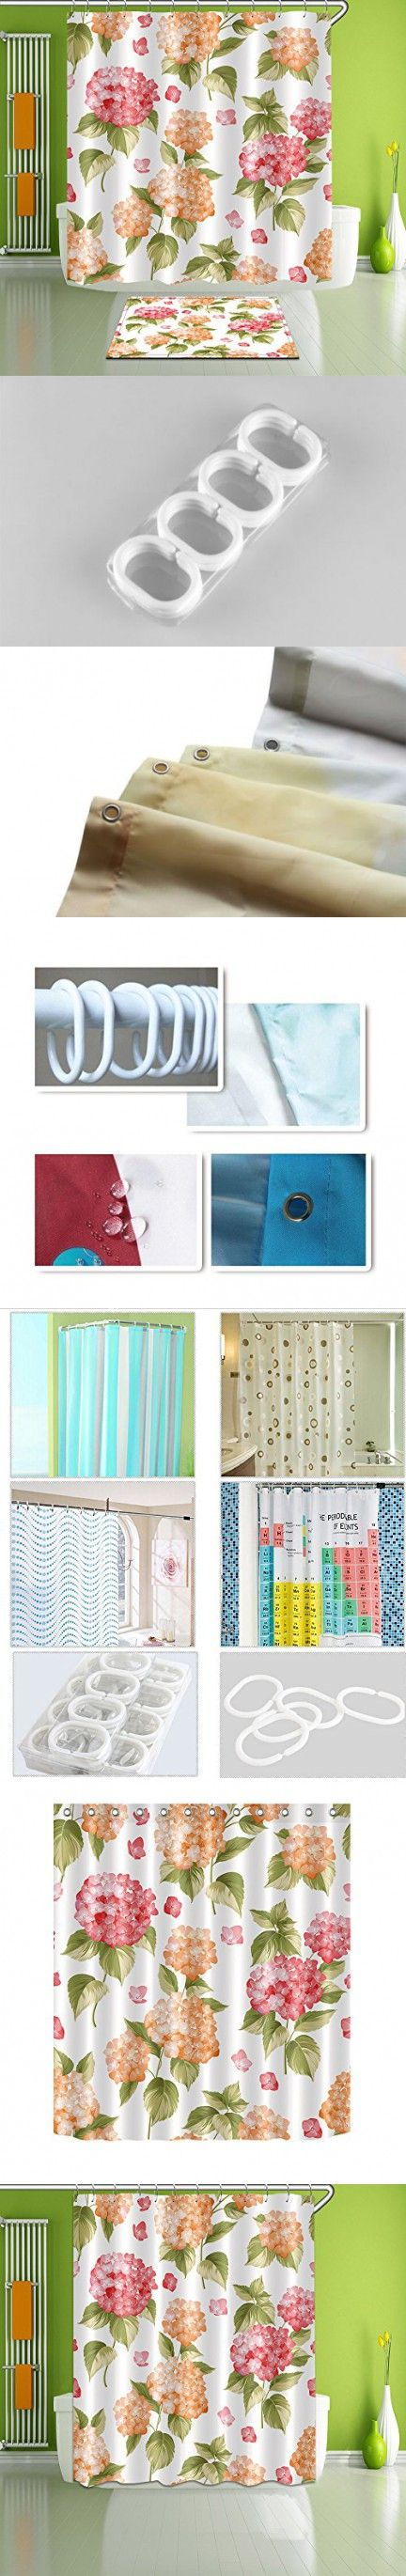 """LB Extra Long Shower Curtain - Flowers are Blooming Waterproof Fabric Home Decor Shower Curtain 72"""" x 84"""""""